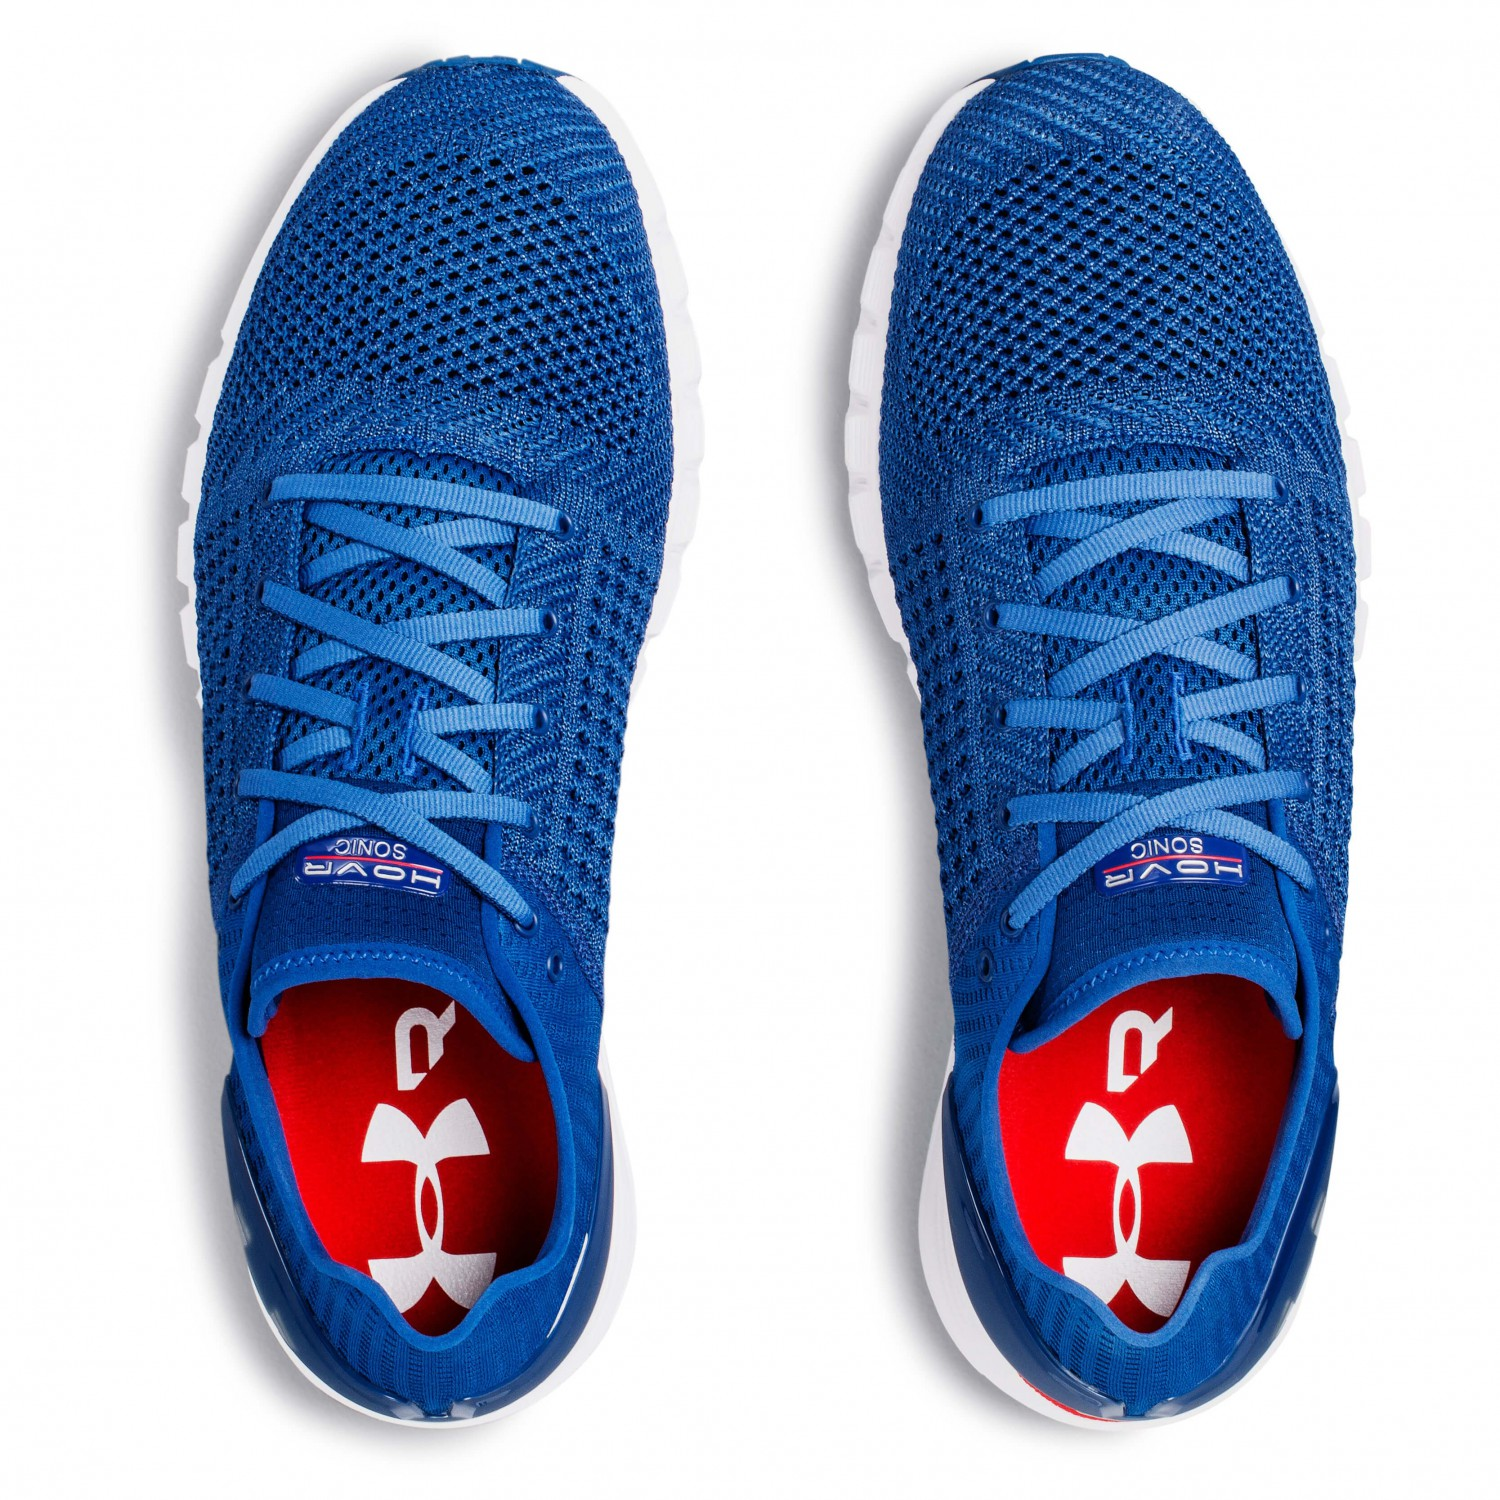 super popular c0751 bd12b Under Armour Hovr Sonic CT - Running Shoes Men's | Buy ...